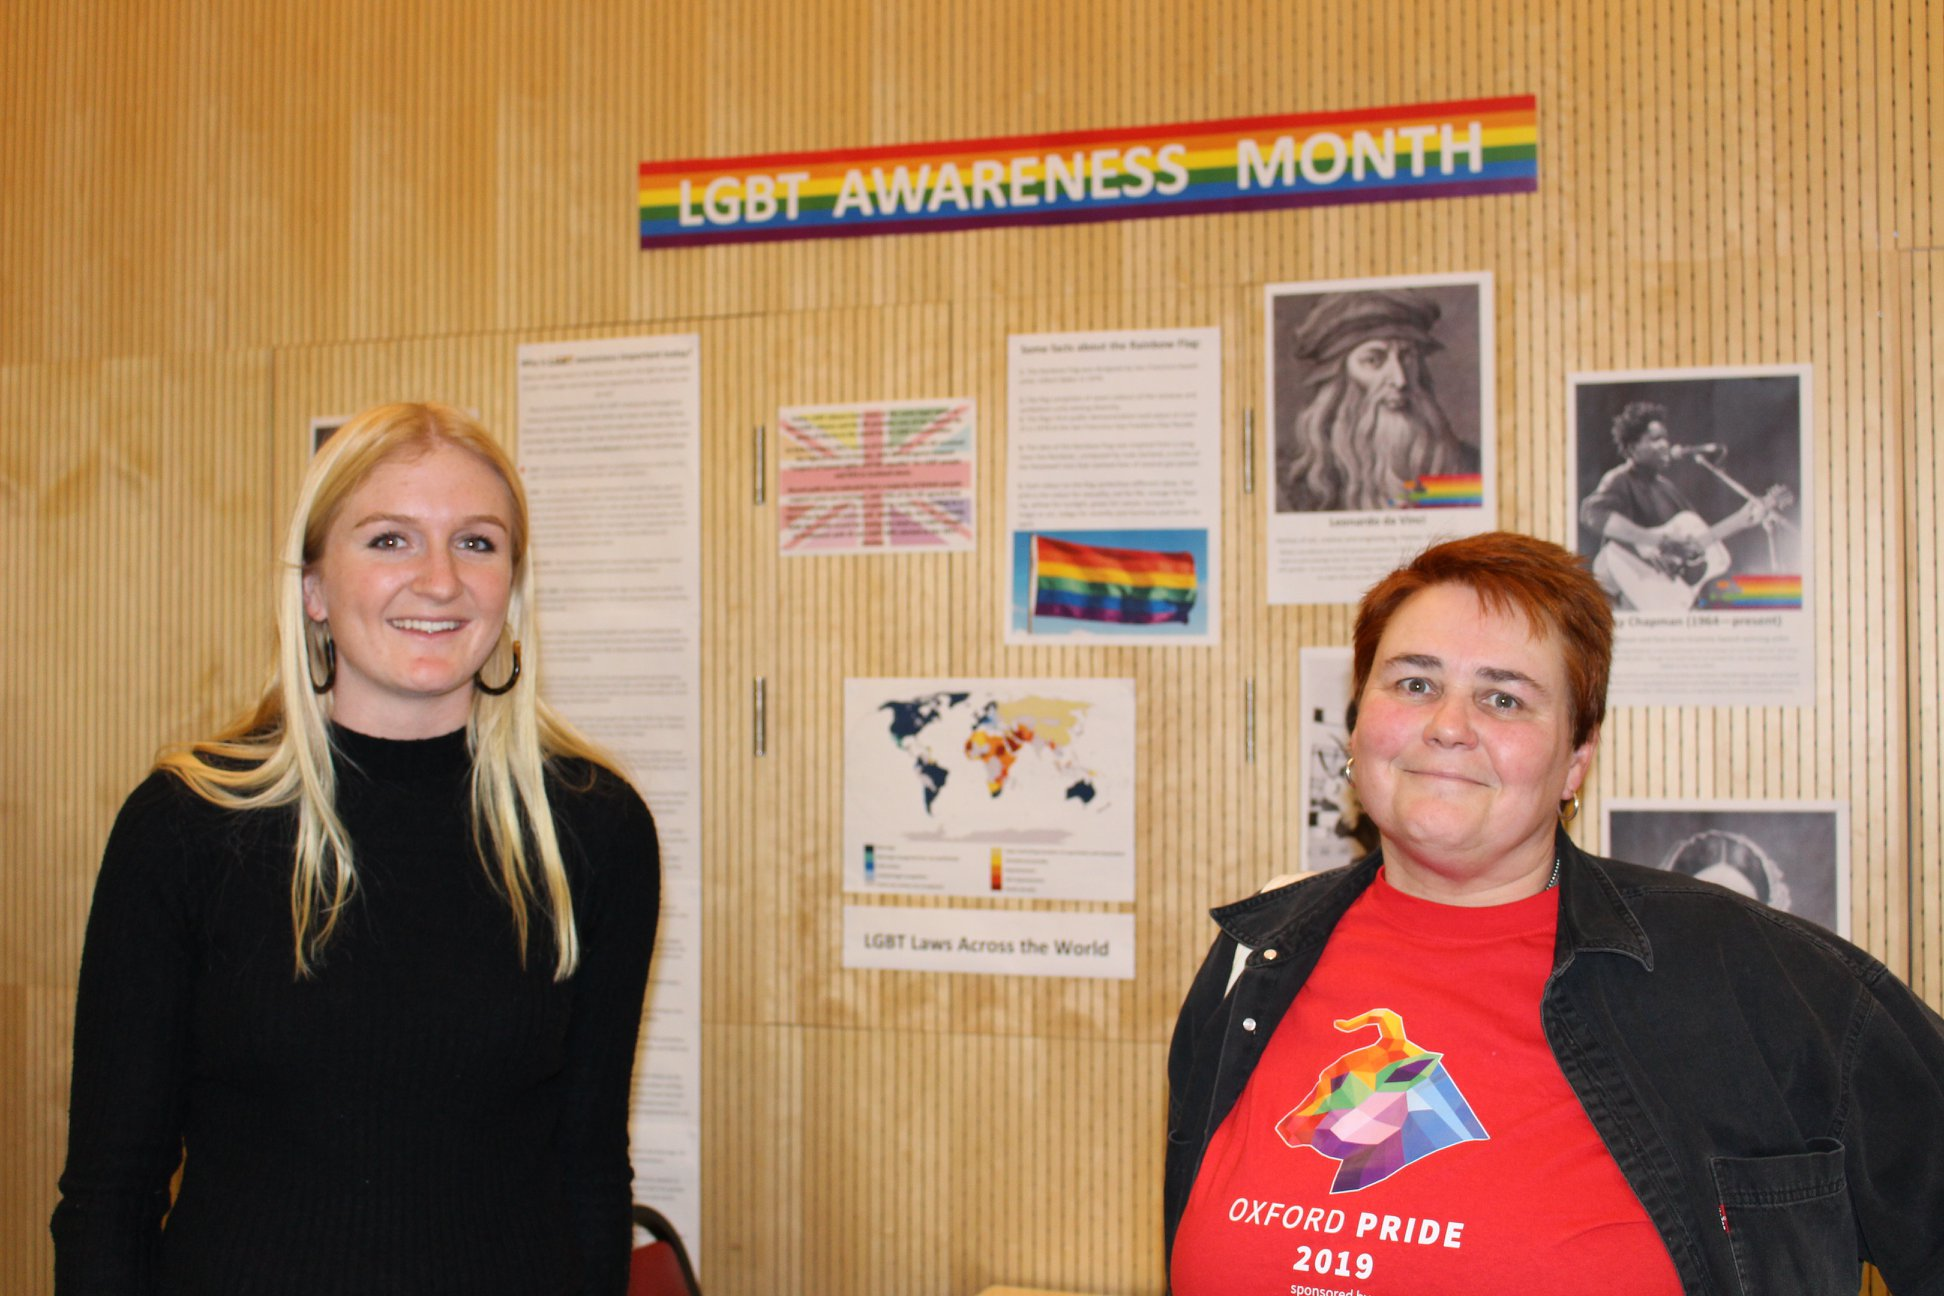 Oxford Pride comes to Ruskin featured image